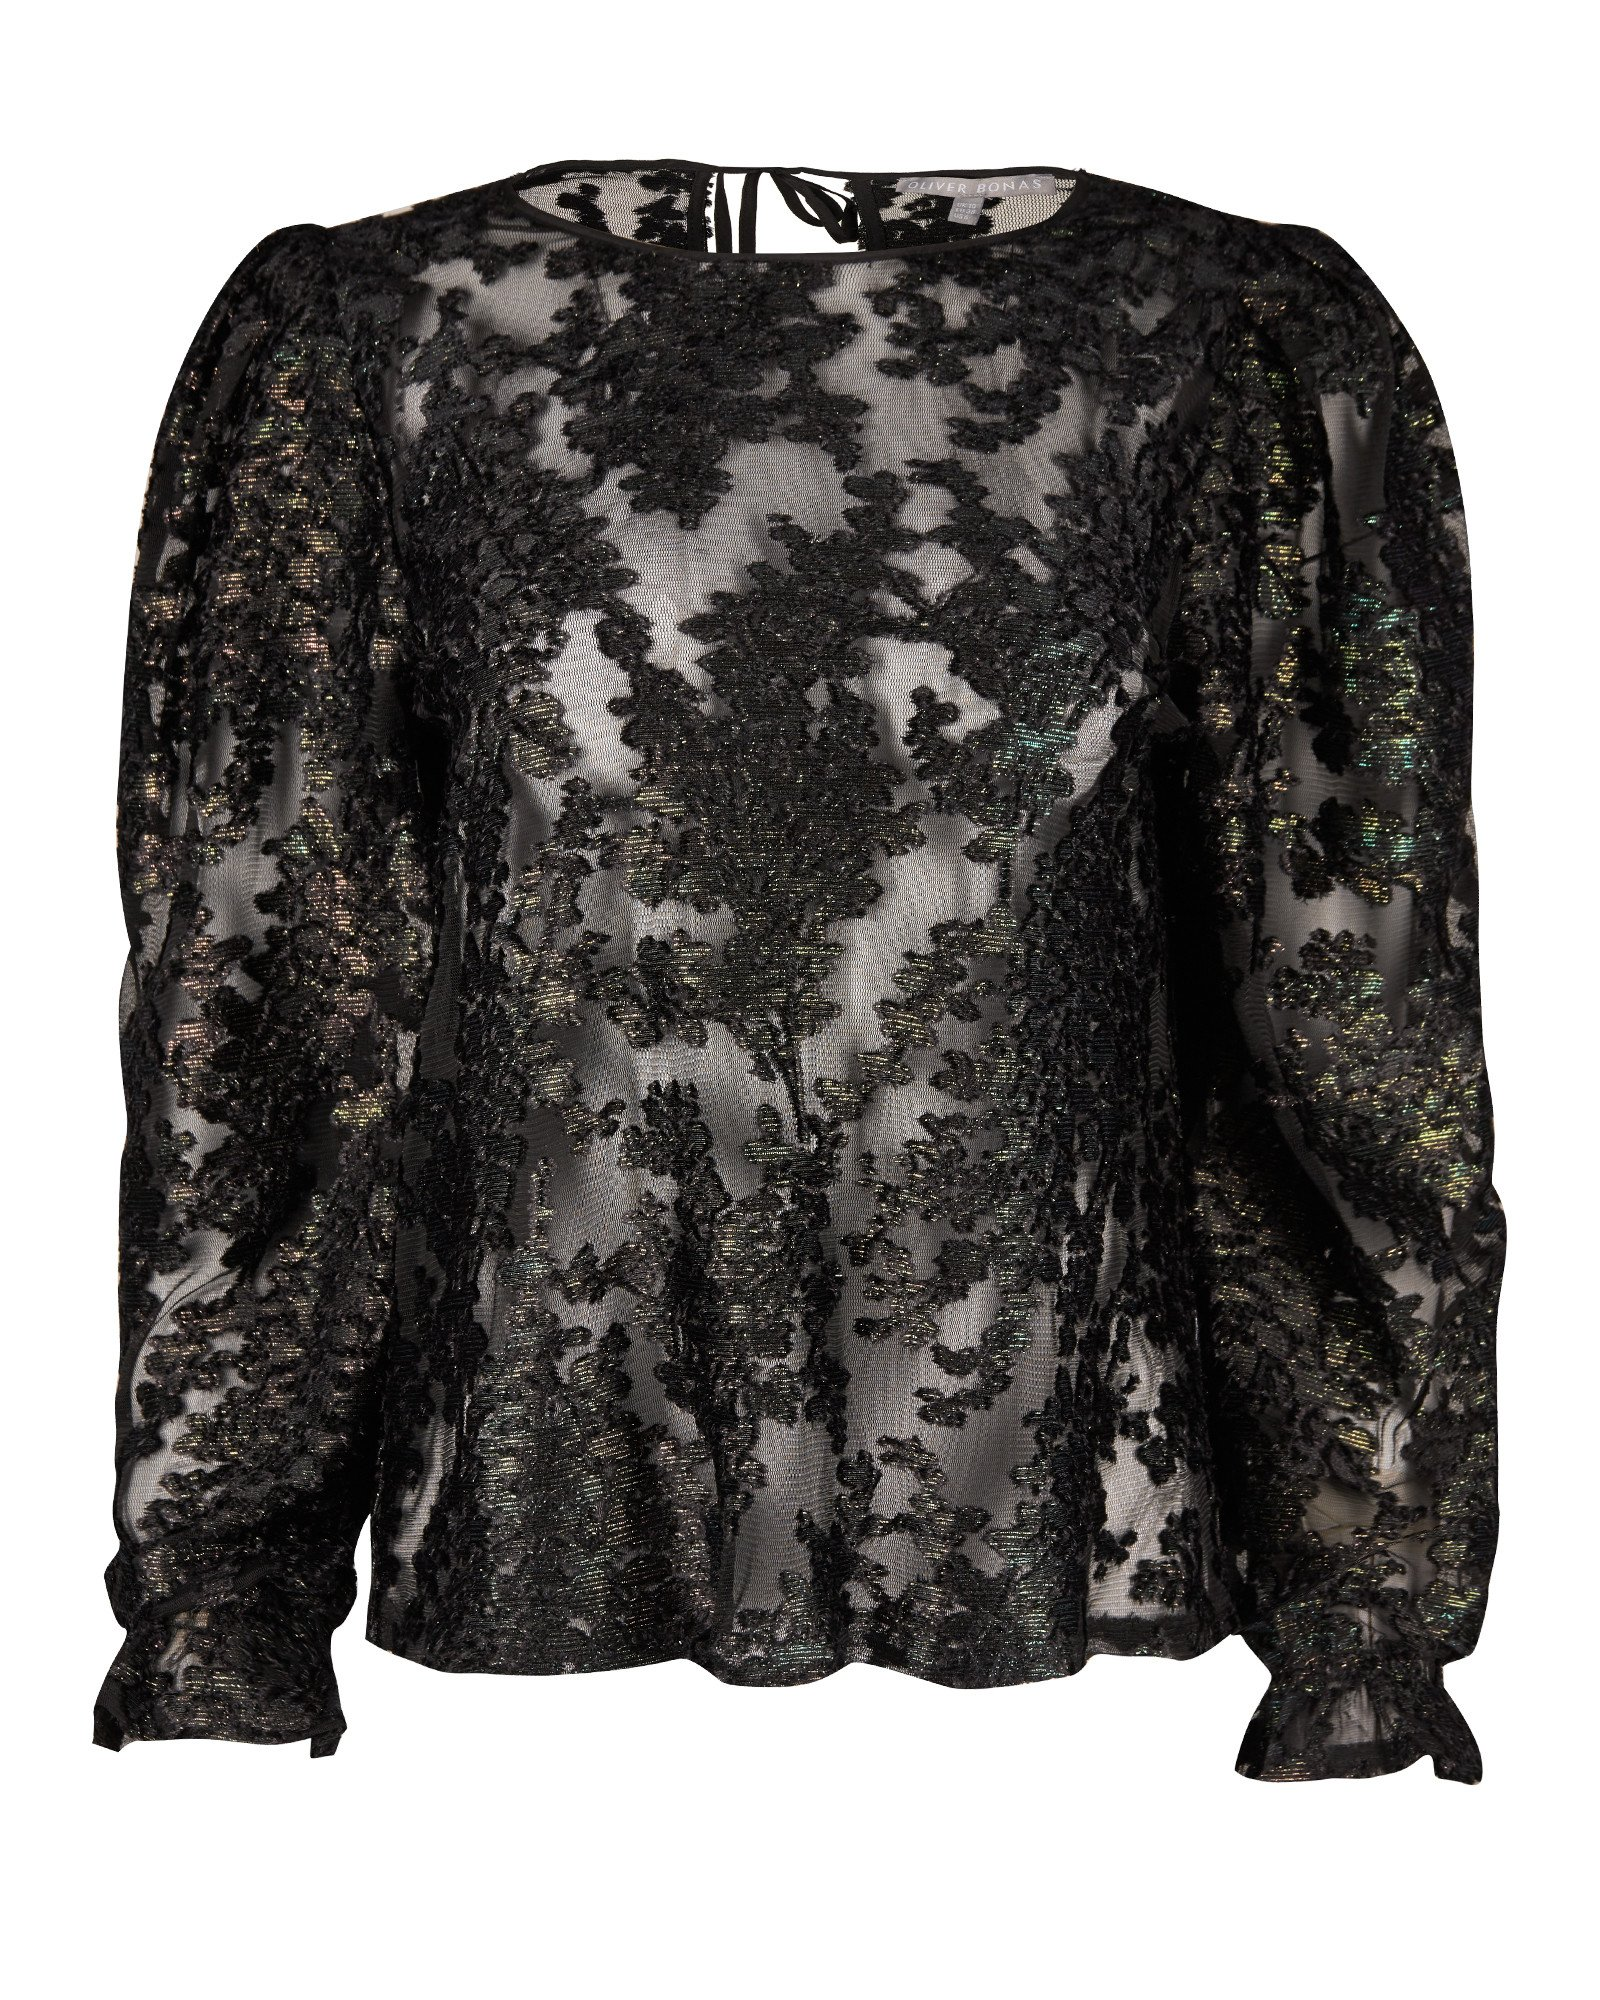 Floral Foil Mesh Green & Black Sheer Blouse